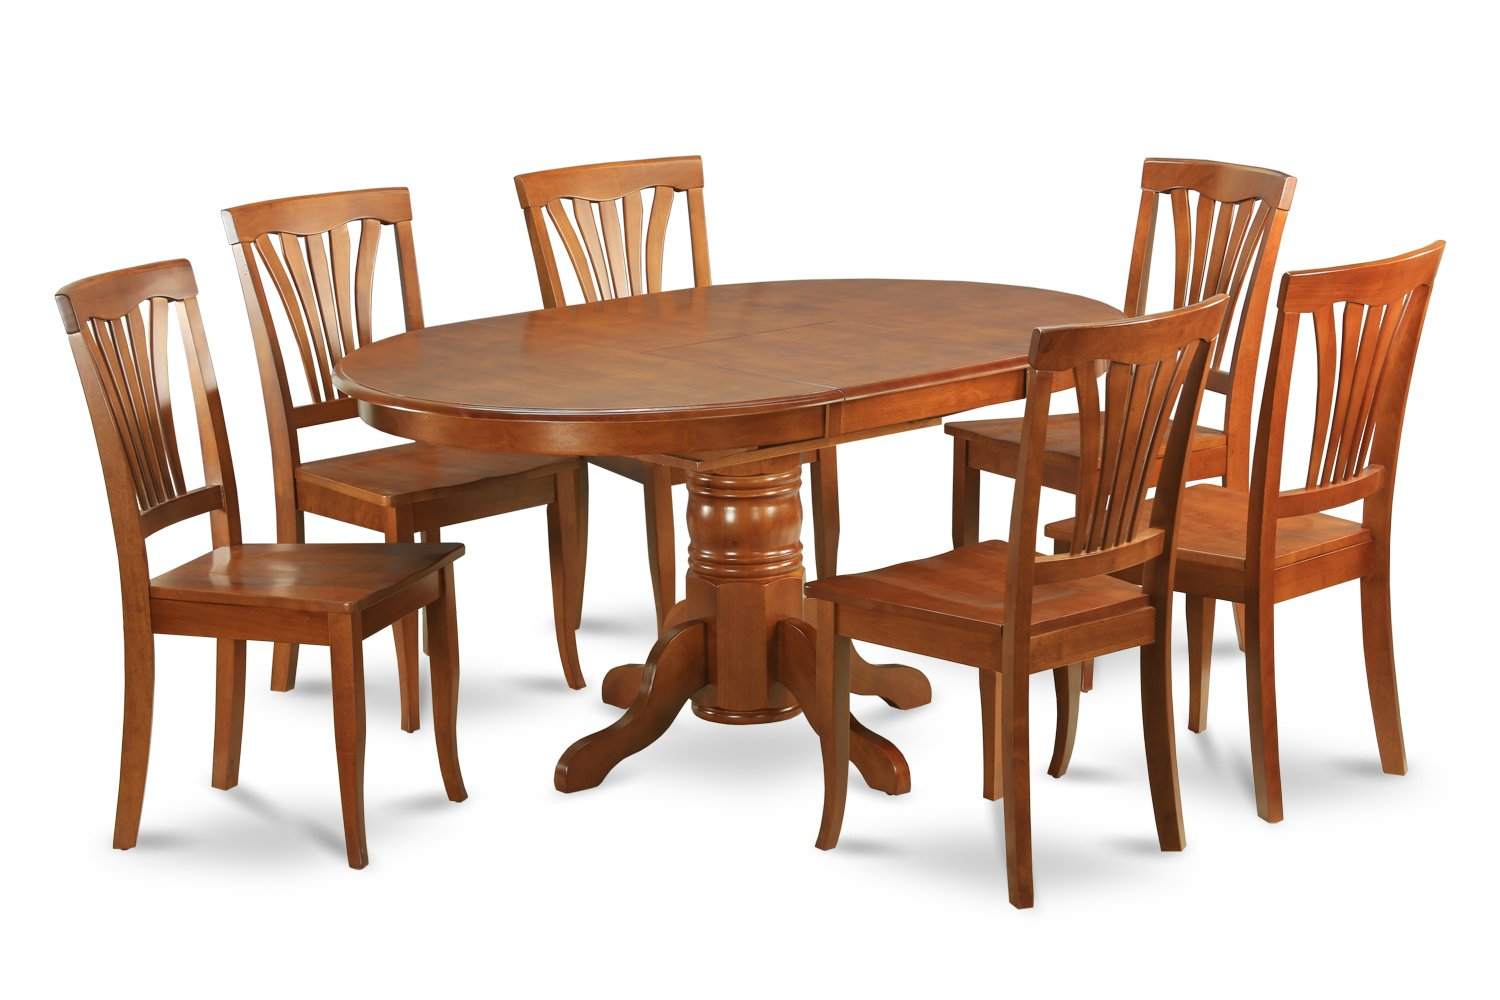 7Pc Oval Avon Dining Table with 6 Wood Seat Chairs in ...